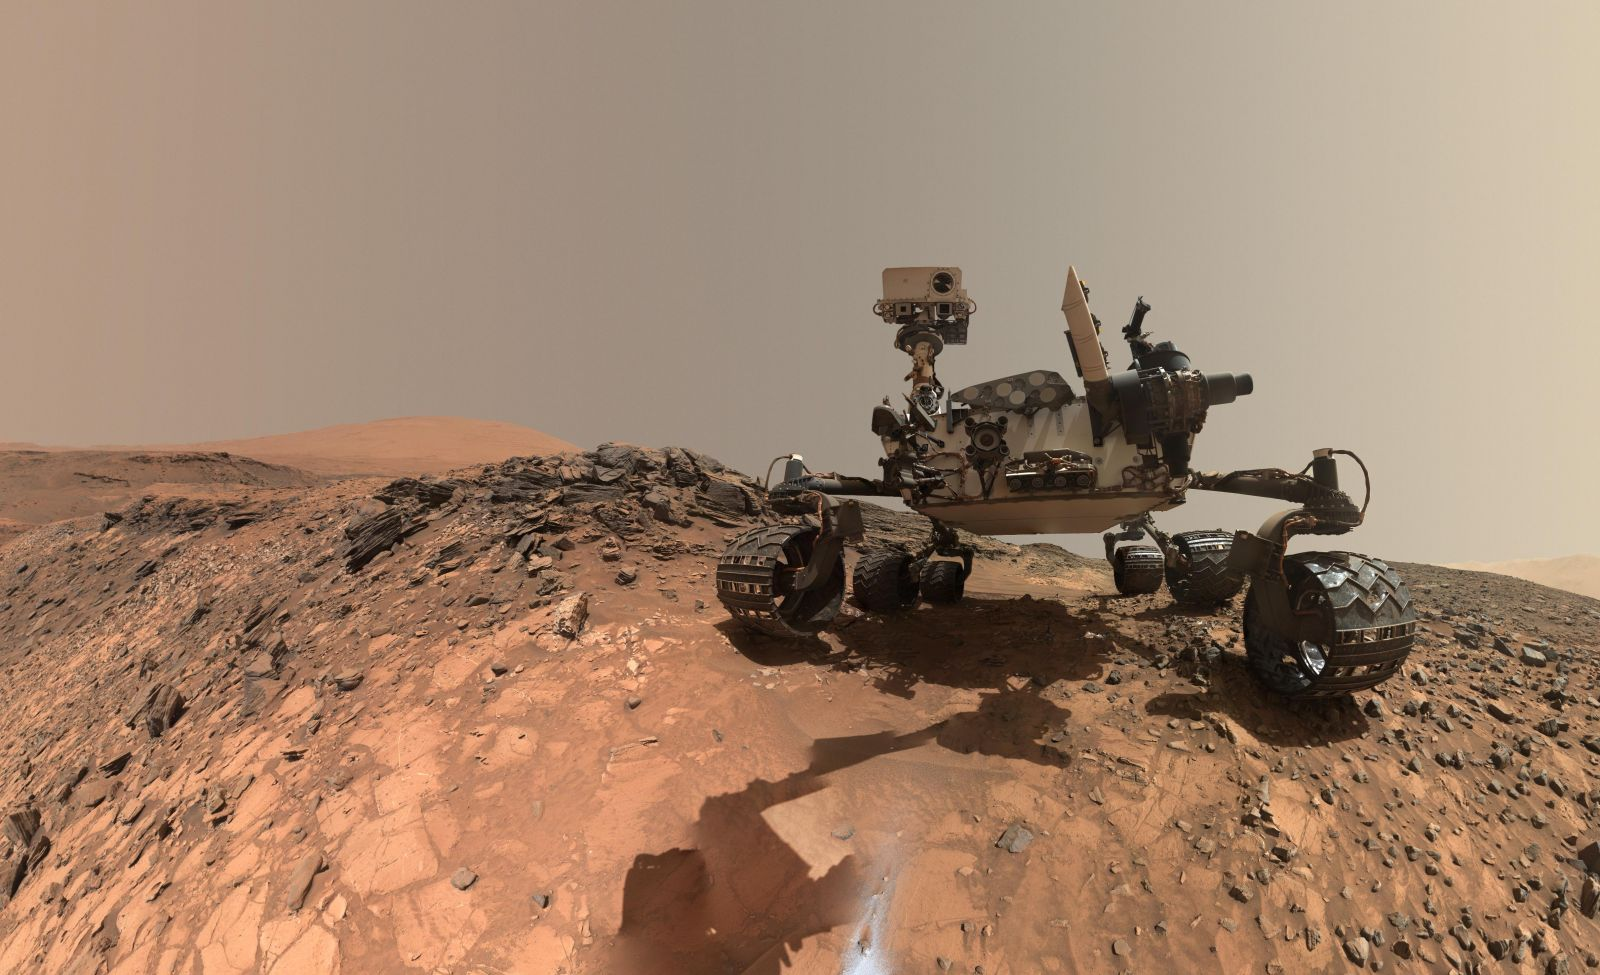 Aliens discovered on Mars? Don't believe the hype